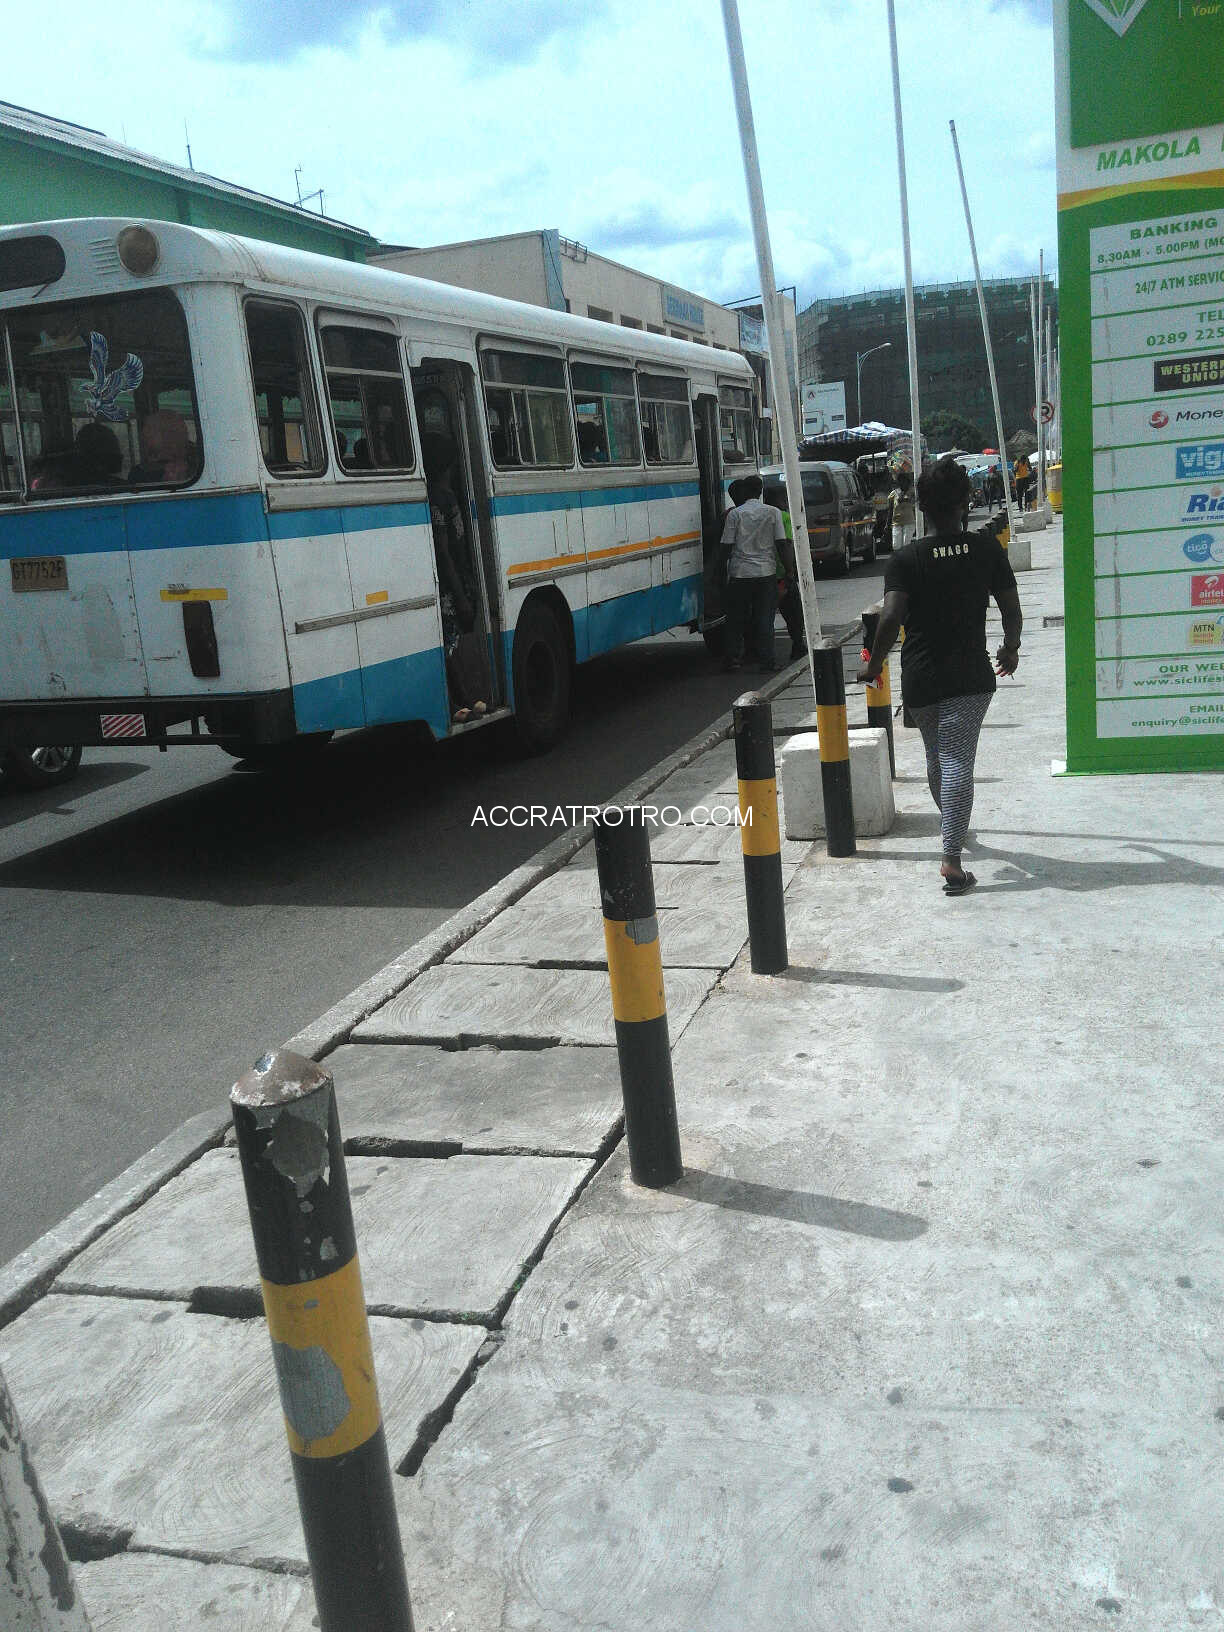 Trotro Tata bus at Accra Arena